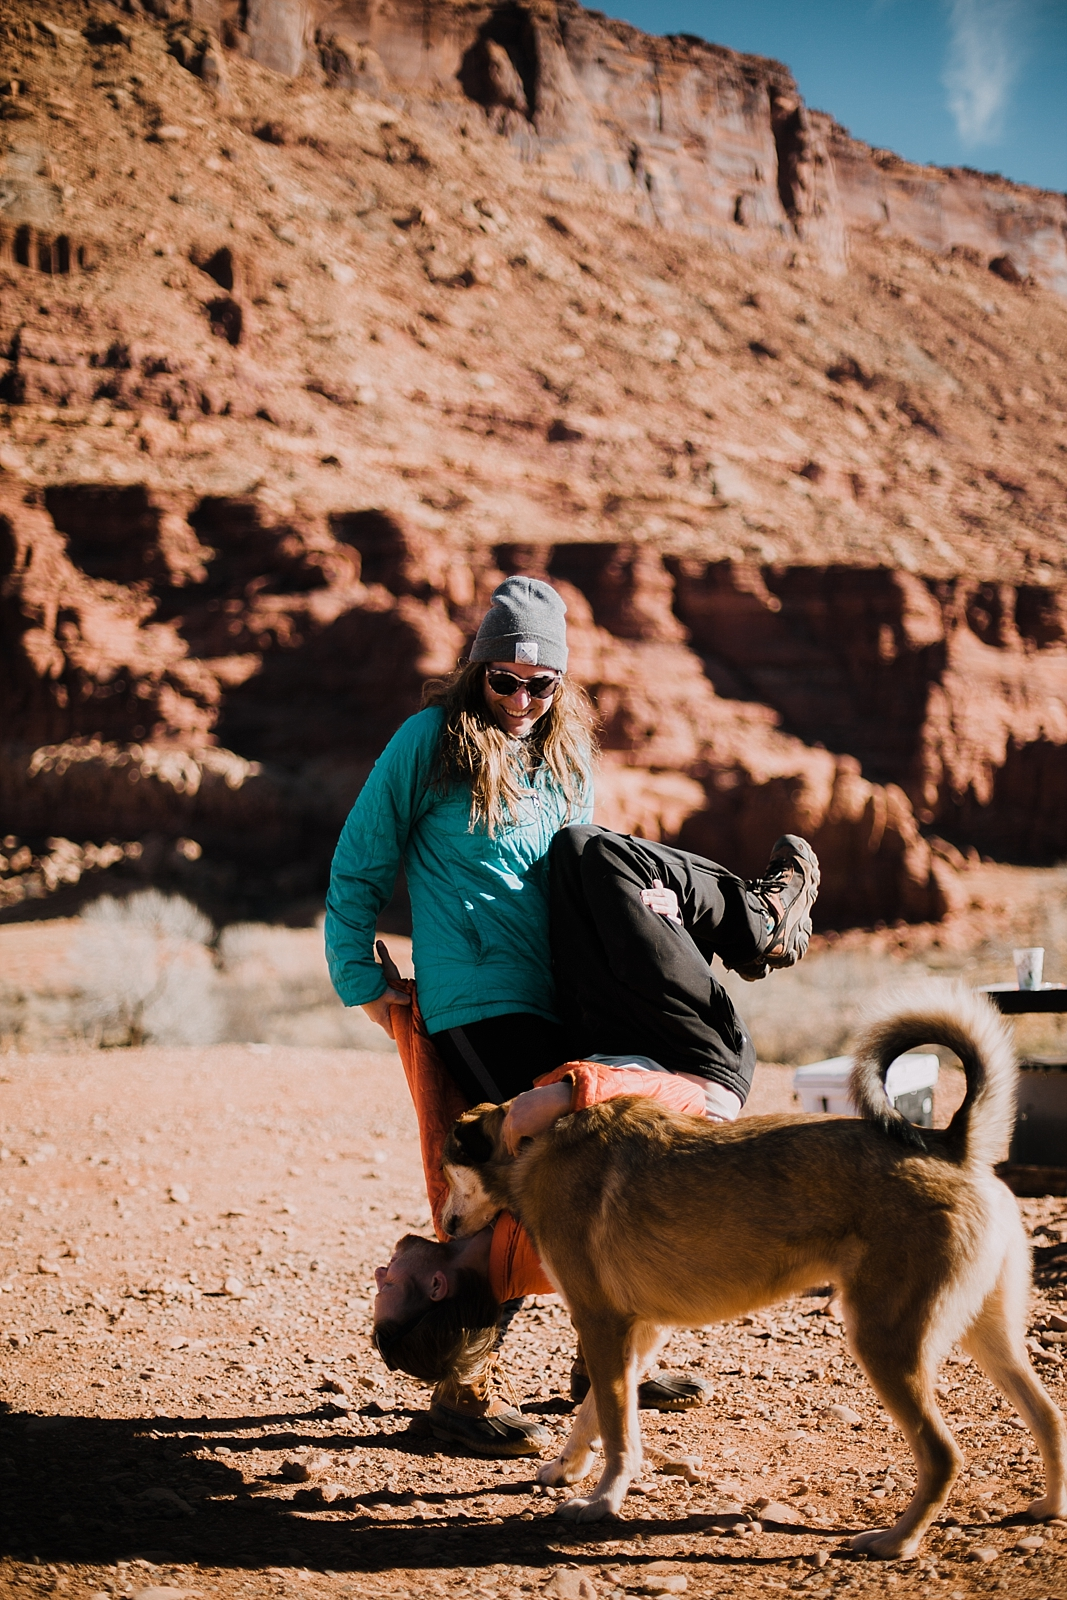 moab-photographer-camp-couples-adventure-session_0007.jpg